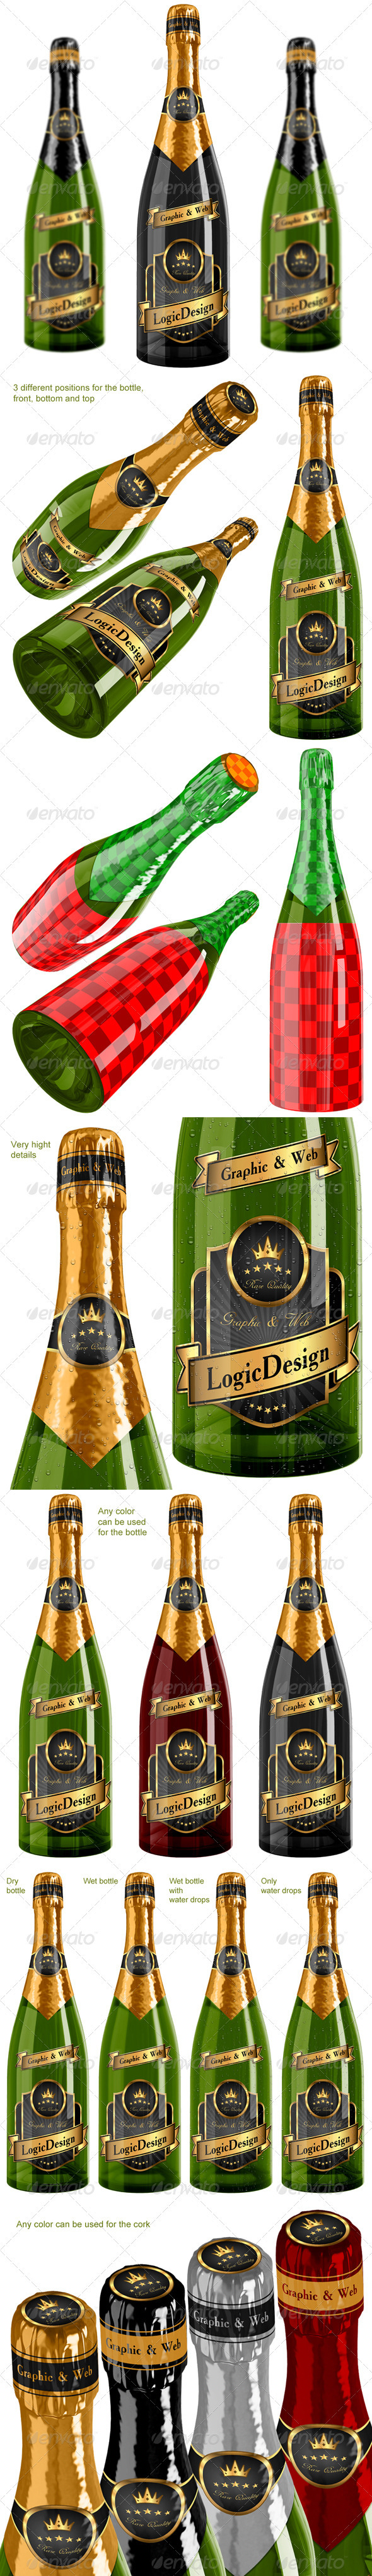 Bottle Champagne Mock Up - Food and Drink Packaging